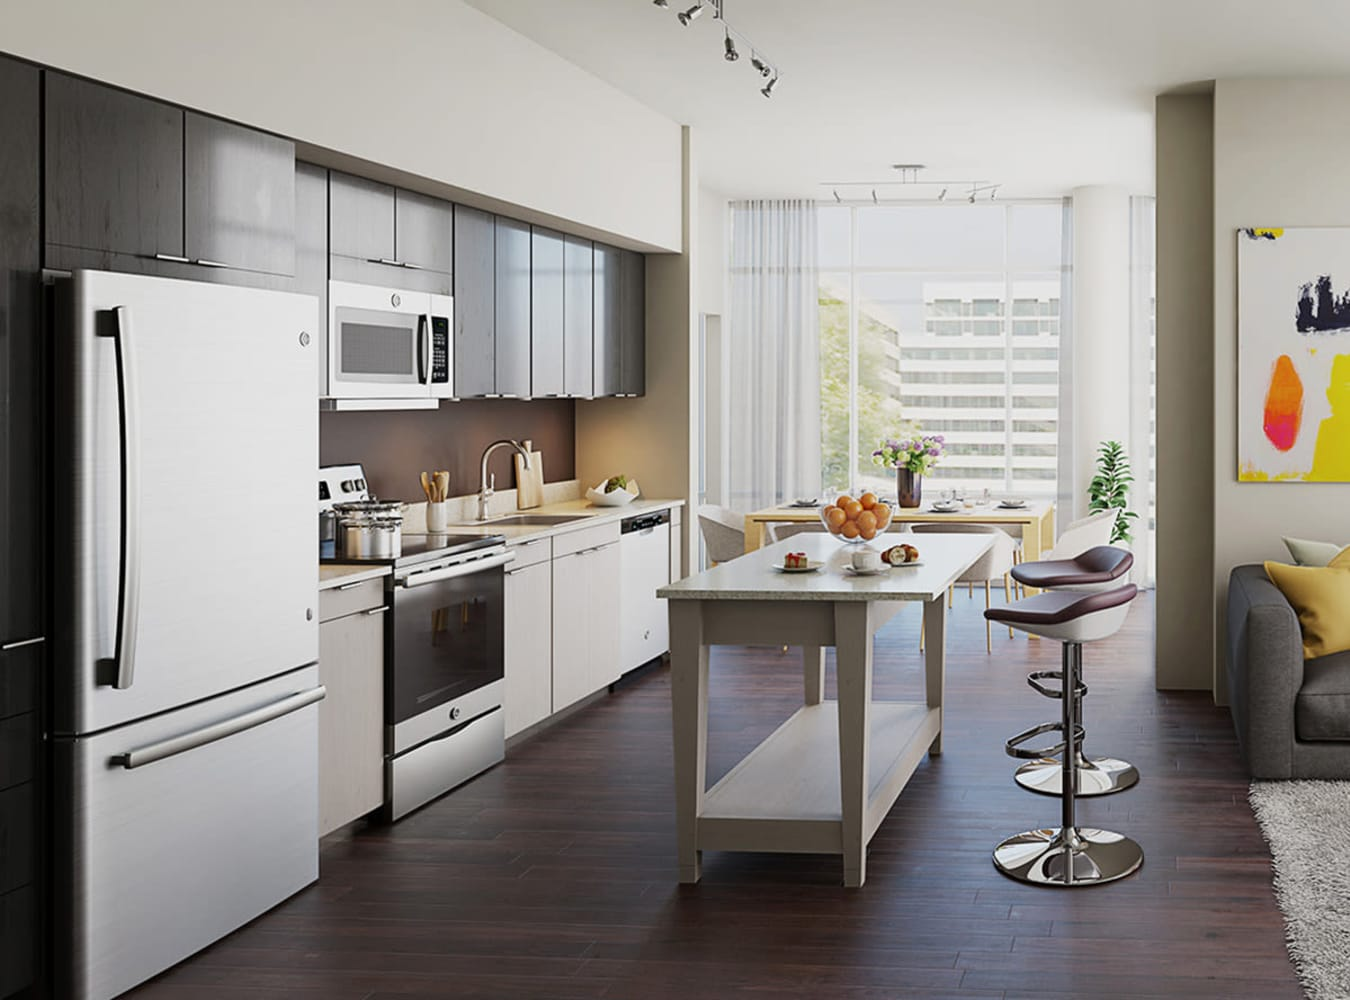 A kitchen with GE stainless-steel appliances at Solaire 8250 Georgia in Silver Spring, Maryland